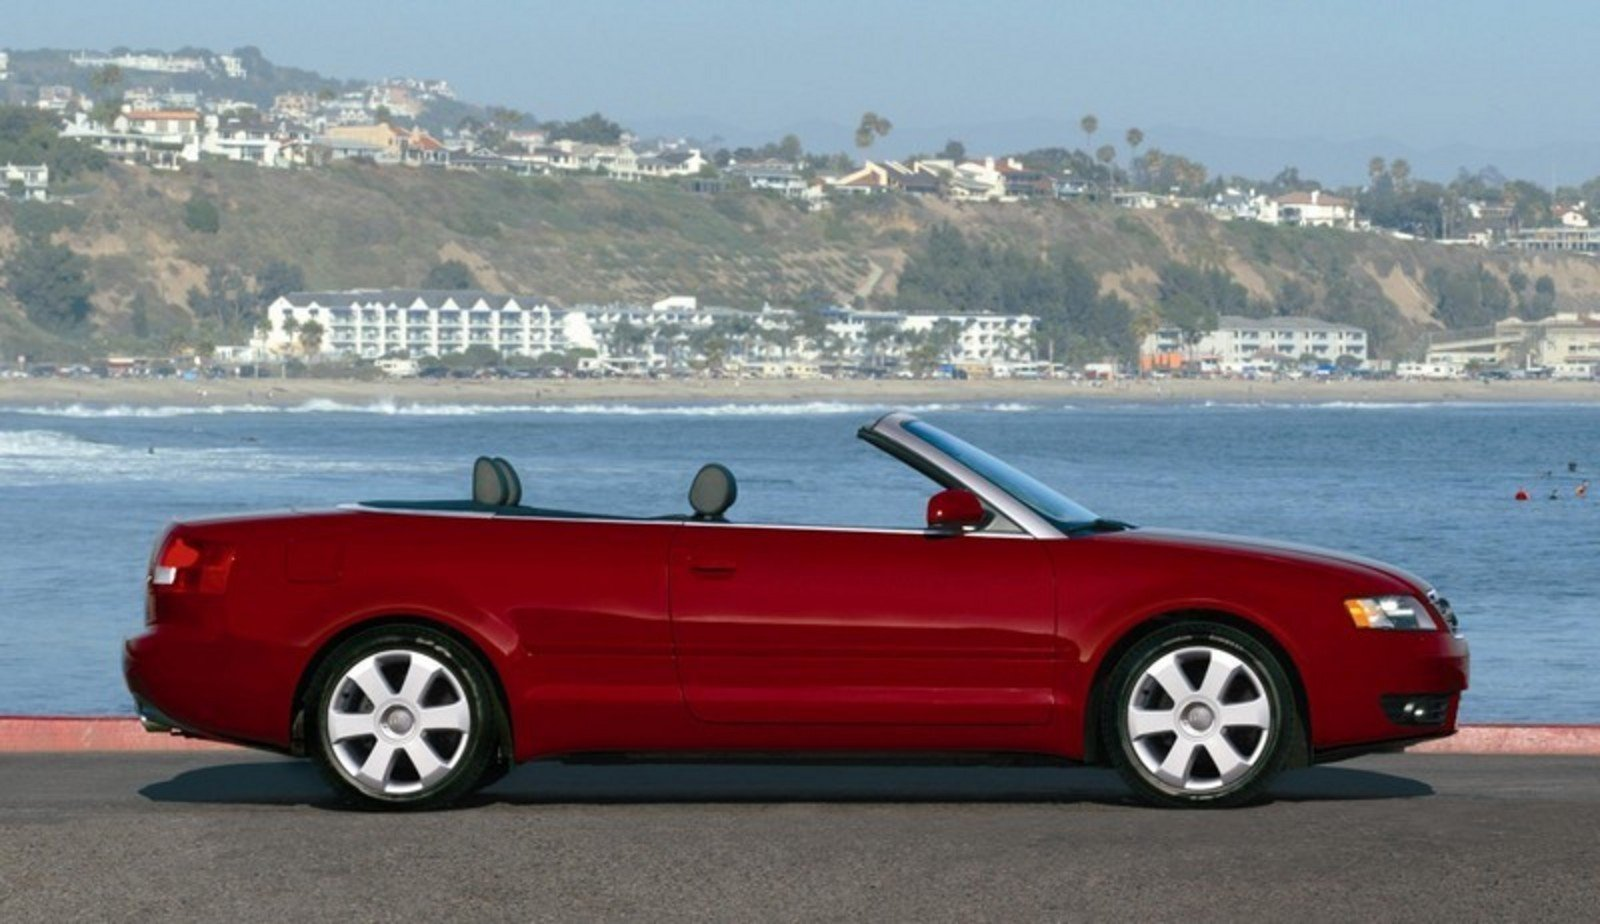 2006 audi a4 convertible picture 45177 car review top speed. Black Bedroom Furniture Sets. Home Design Ideas